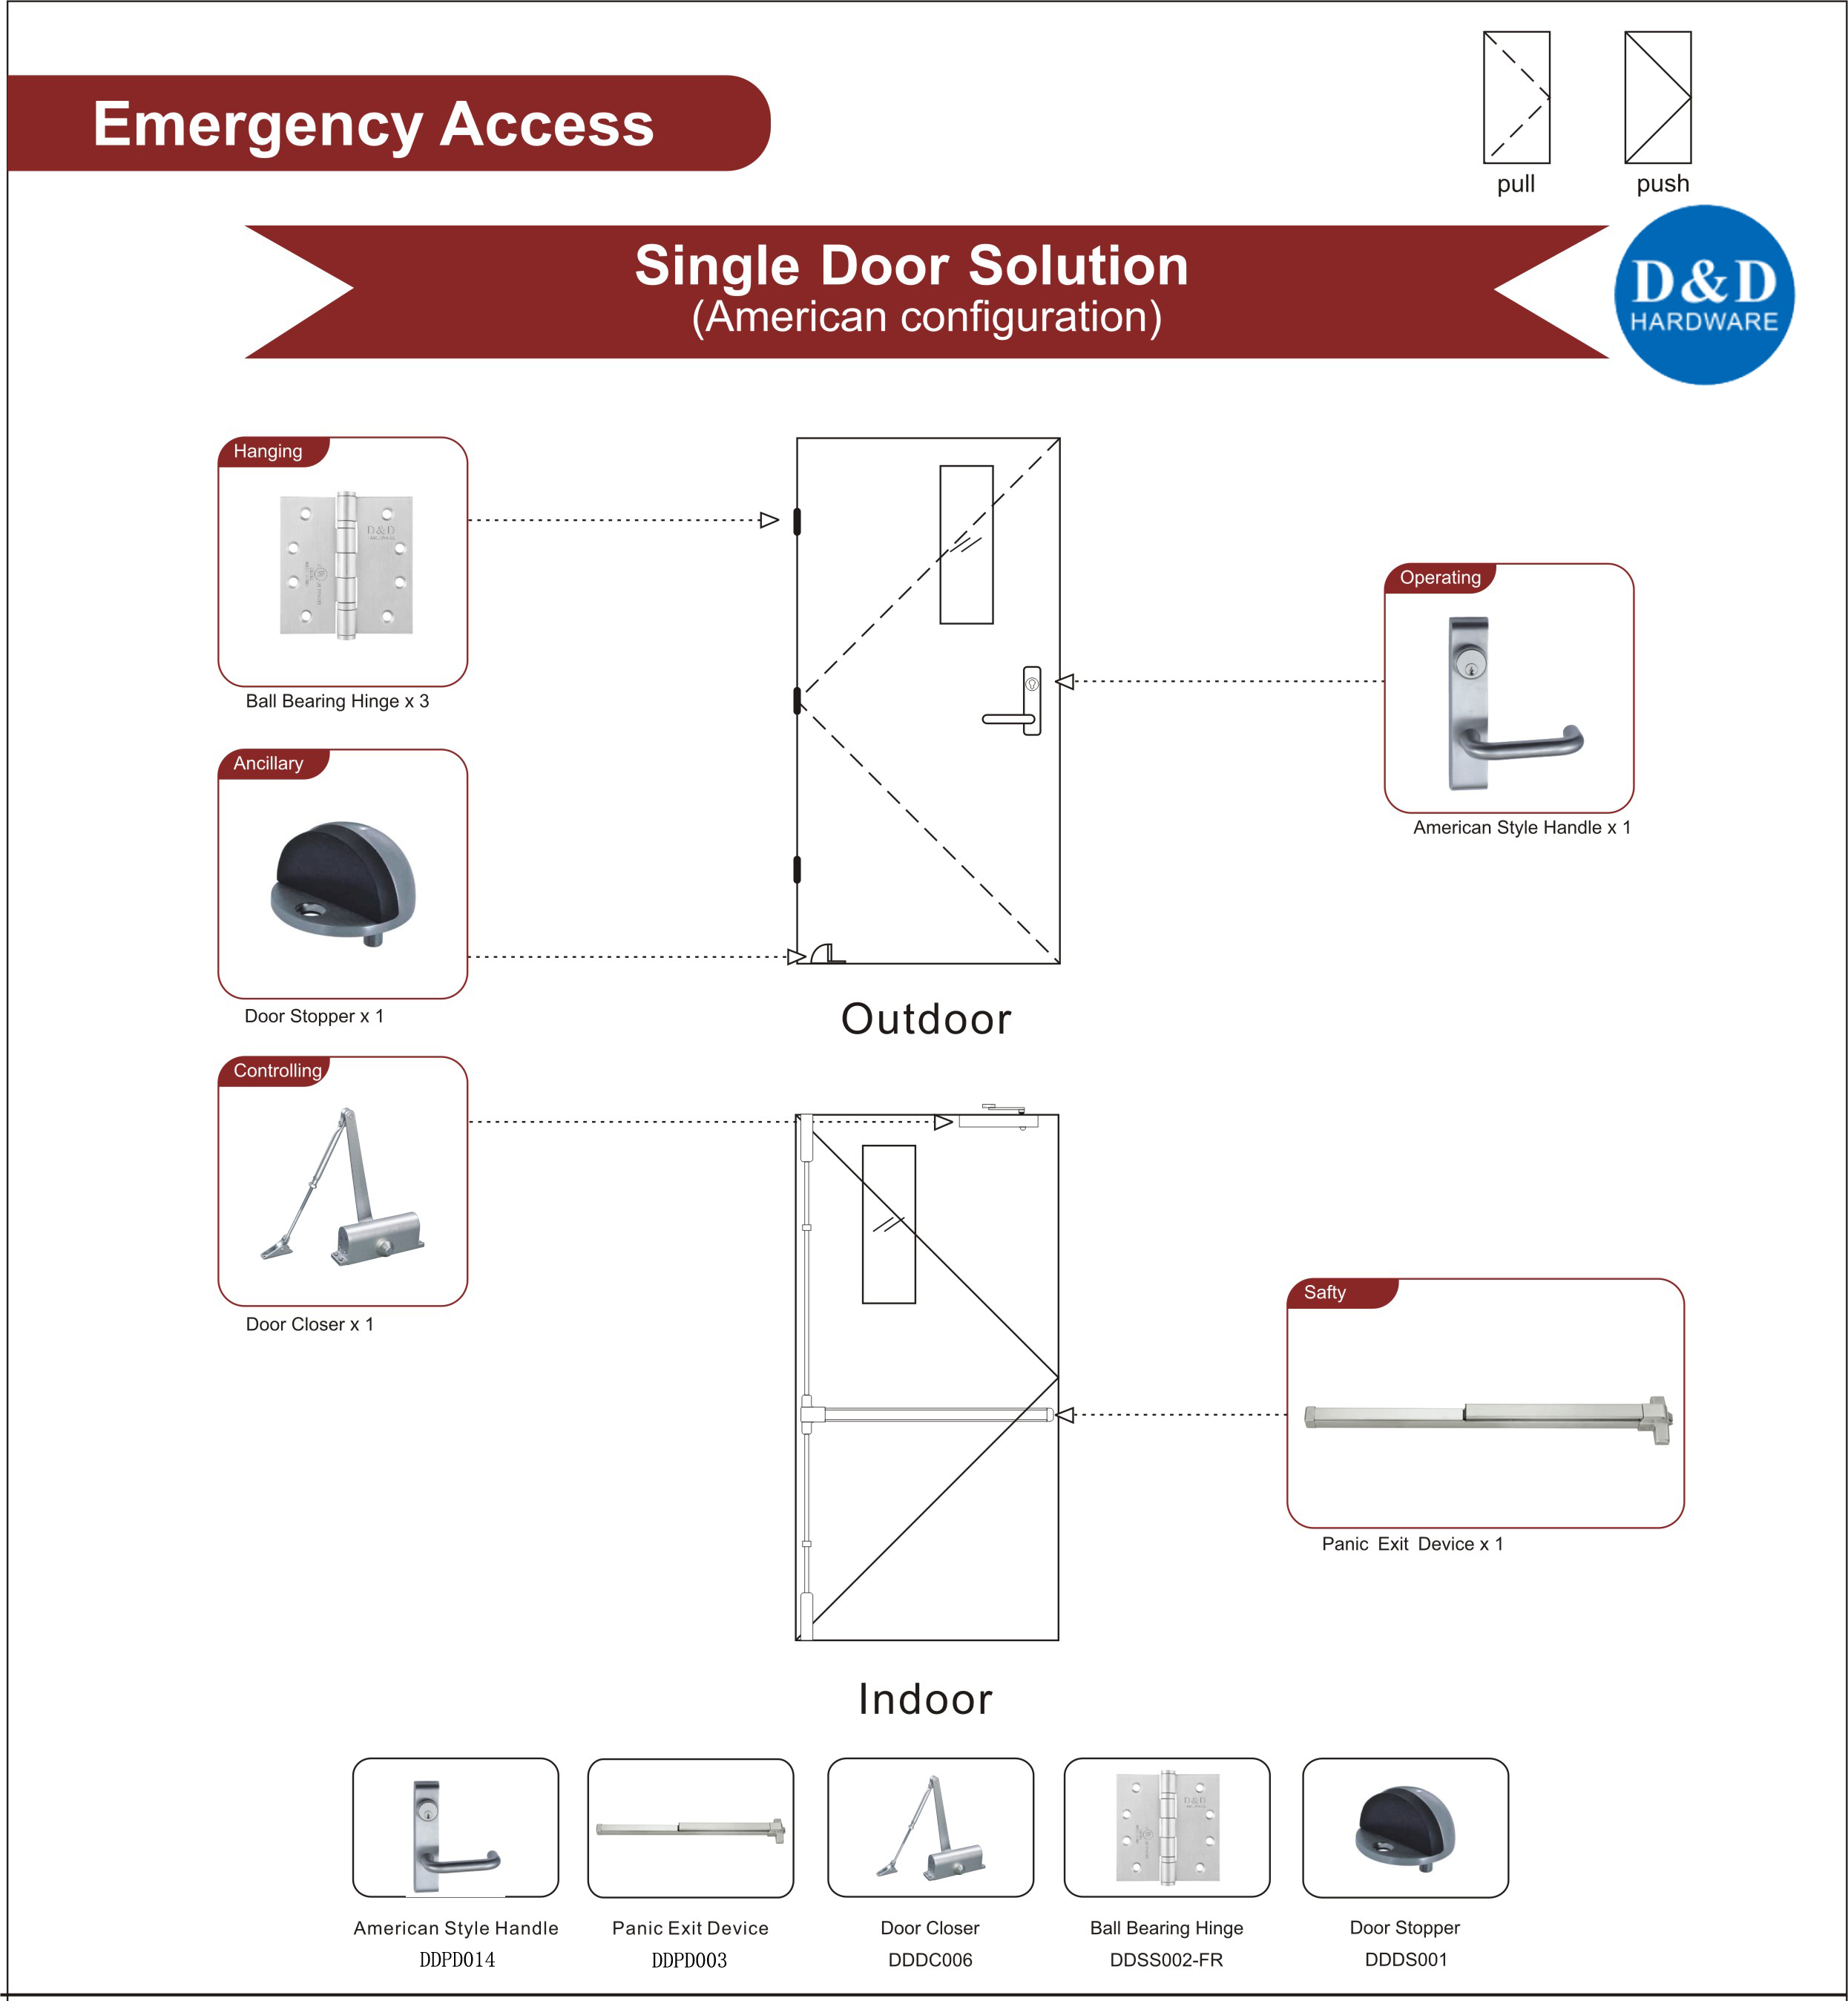 Fire Rated Steel Door Hardware for Emergency Access Single Door